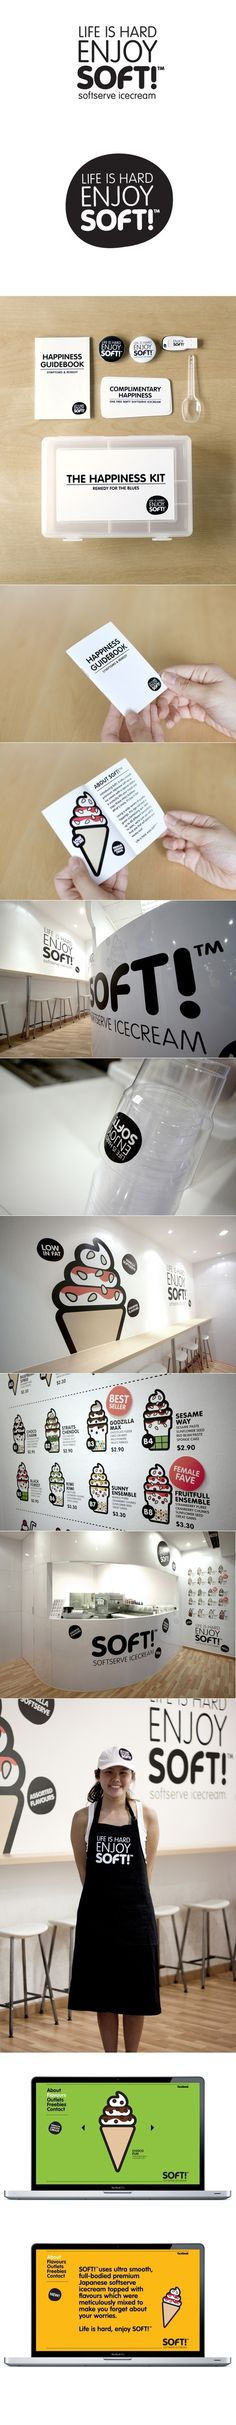 SoftTM branding by Bravo Company #branding #ice cream #retail